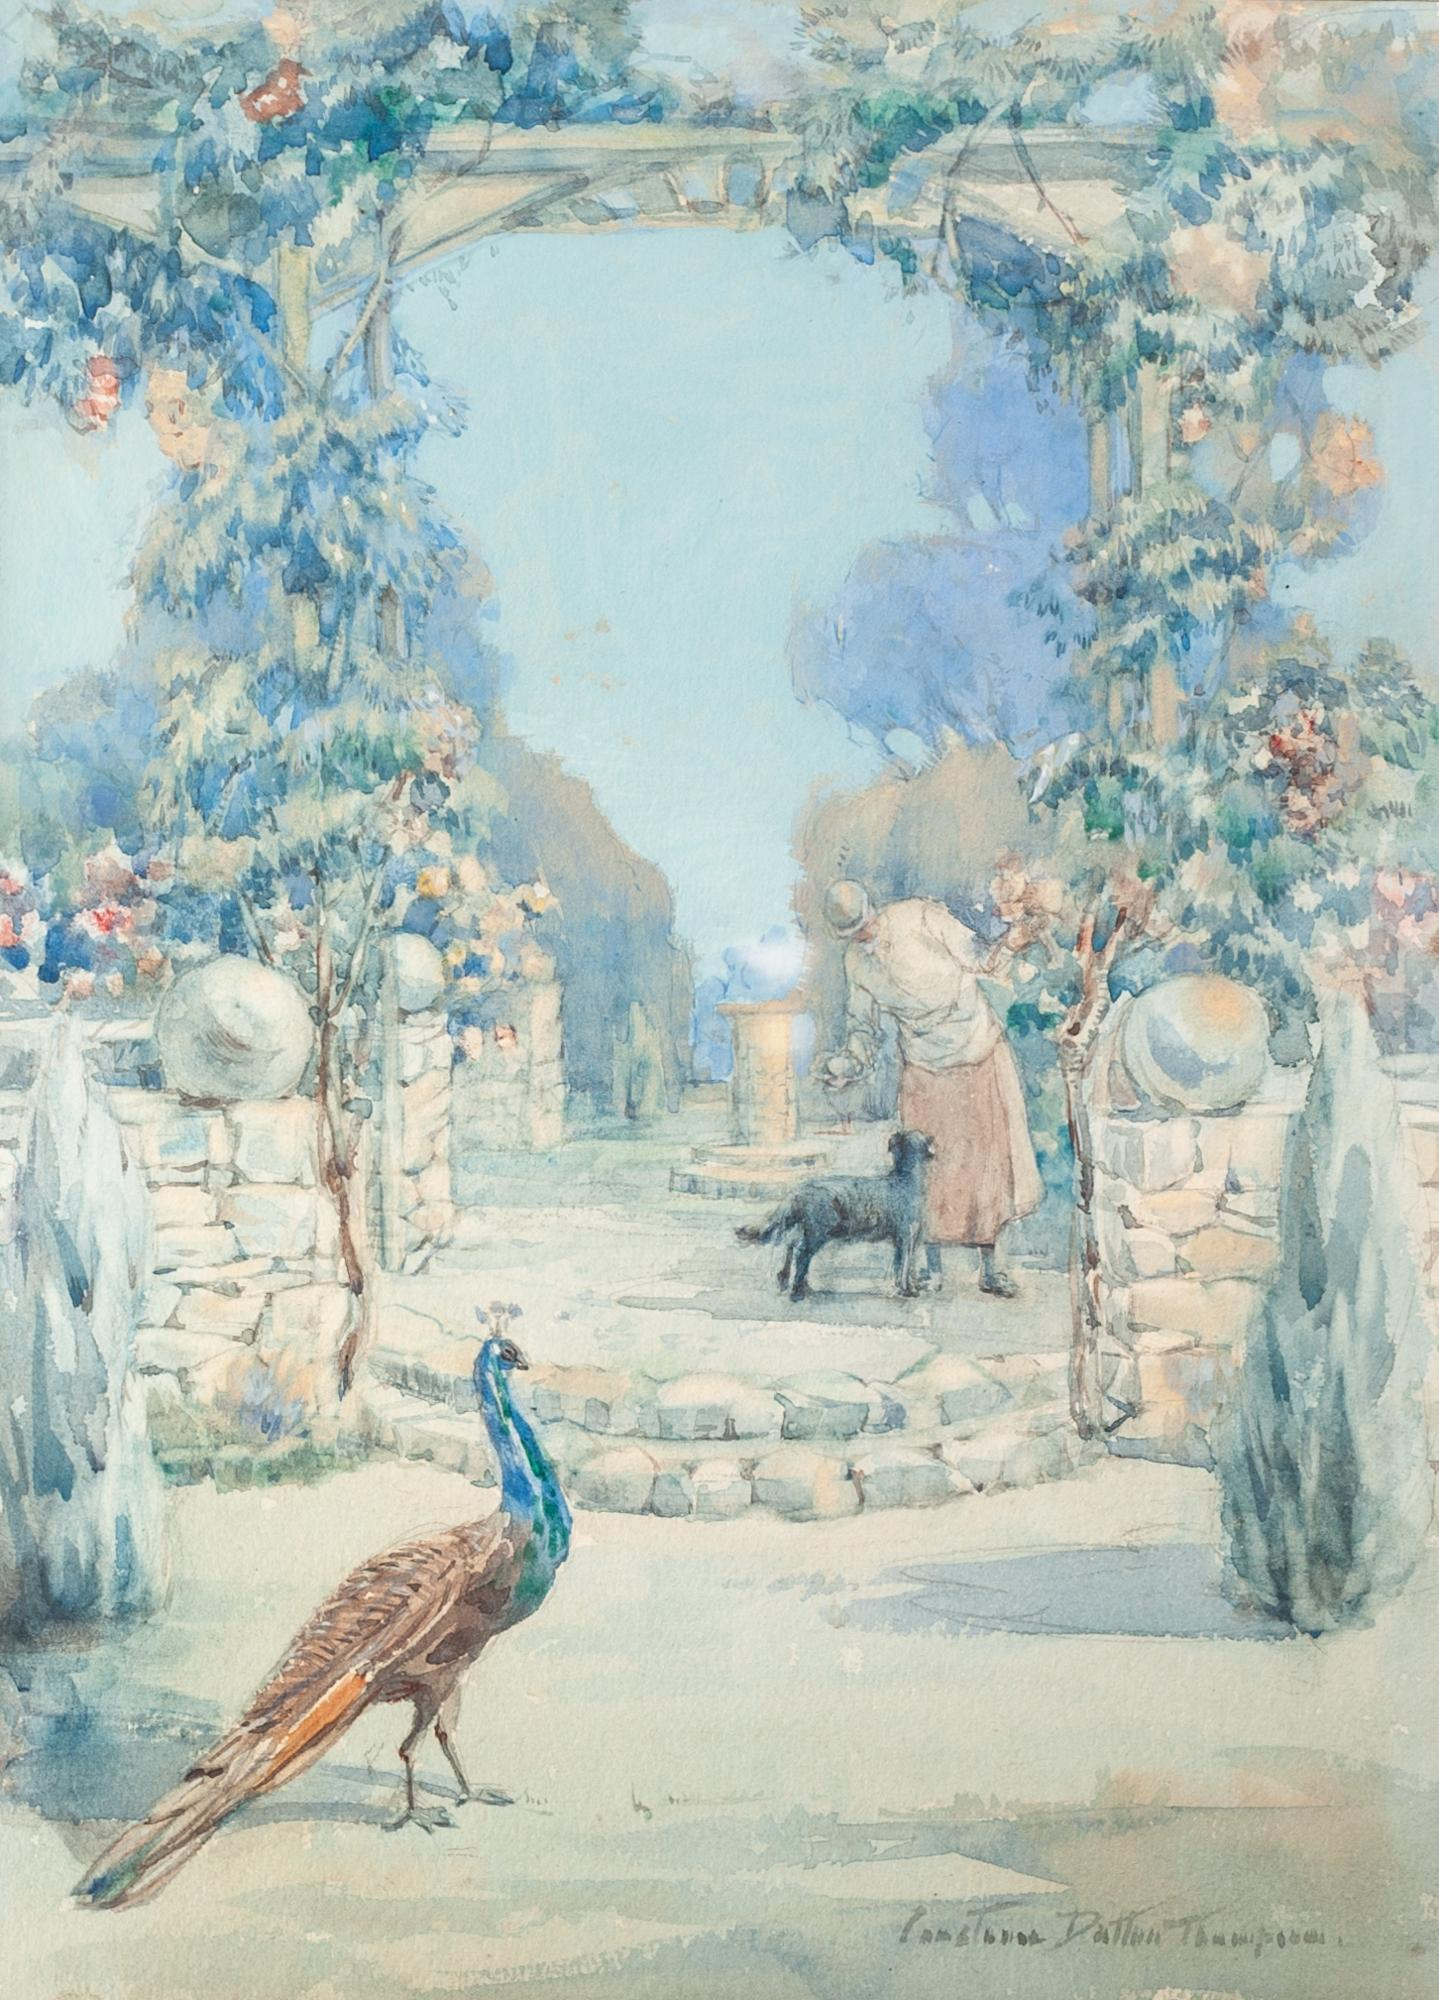 Lot 167 - CONSTANCE DUTTON THOMPSON (b 1882) Watercolour Garden scene with a lady and pet dog, a peacock in